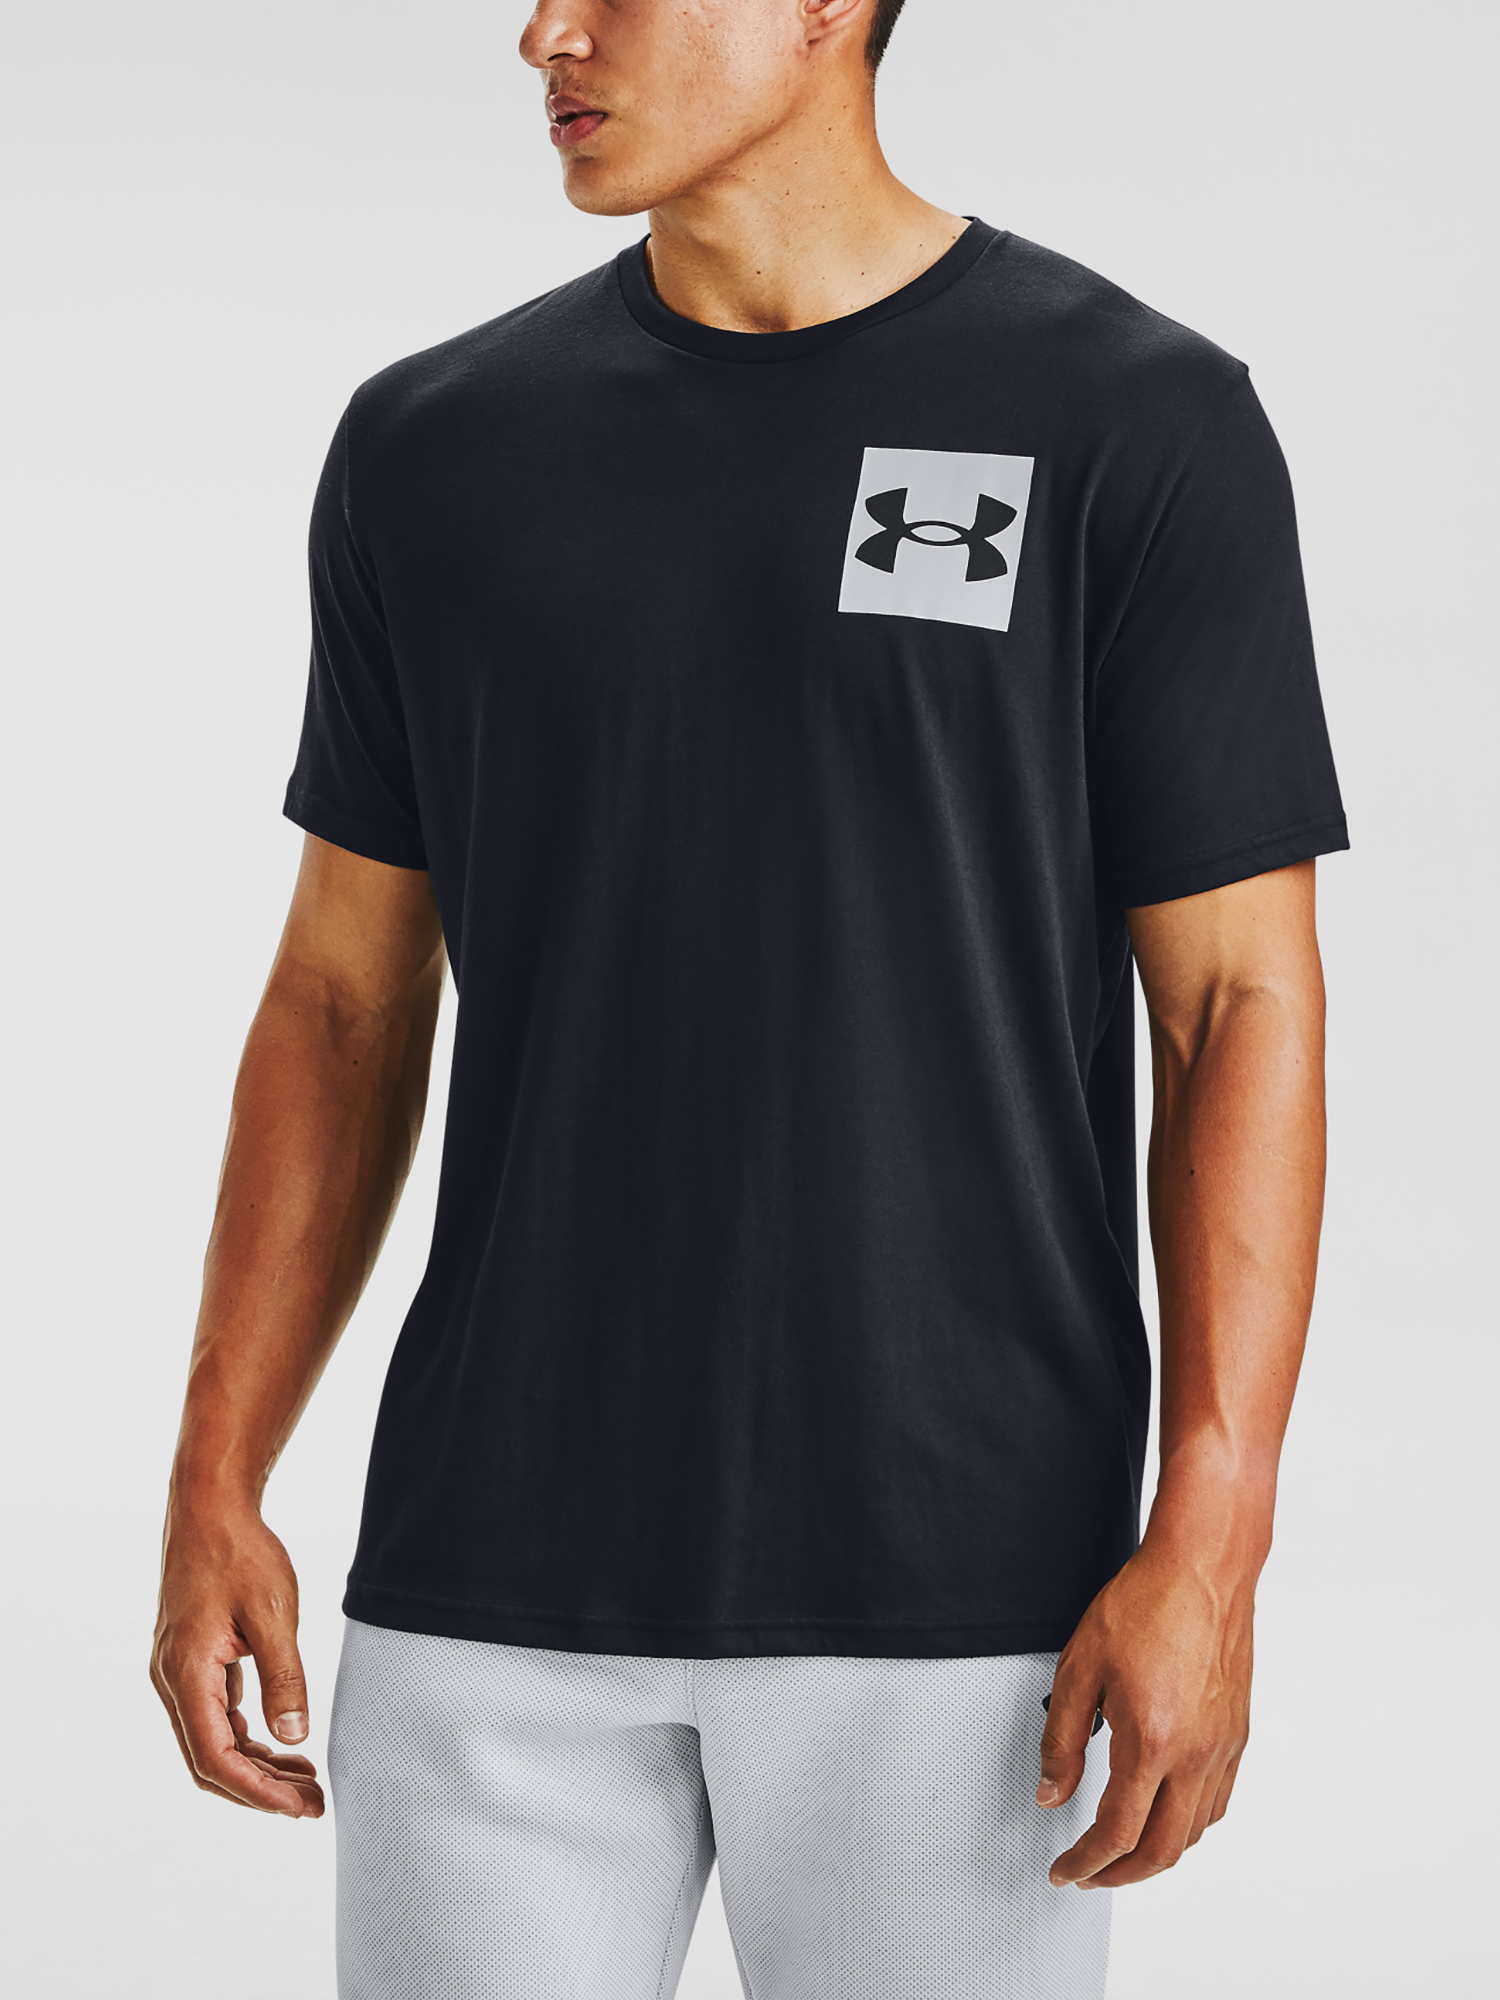 Tričko Under Armour UA BOX LOGO SS-BLK (1)